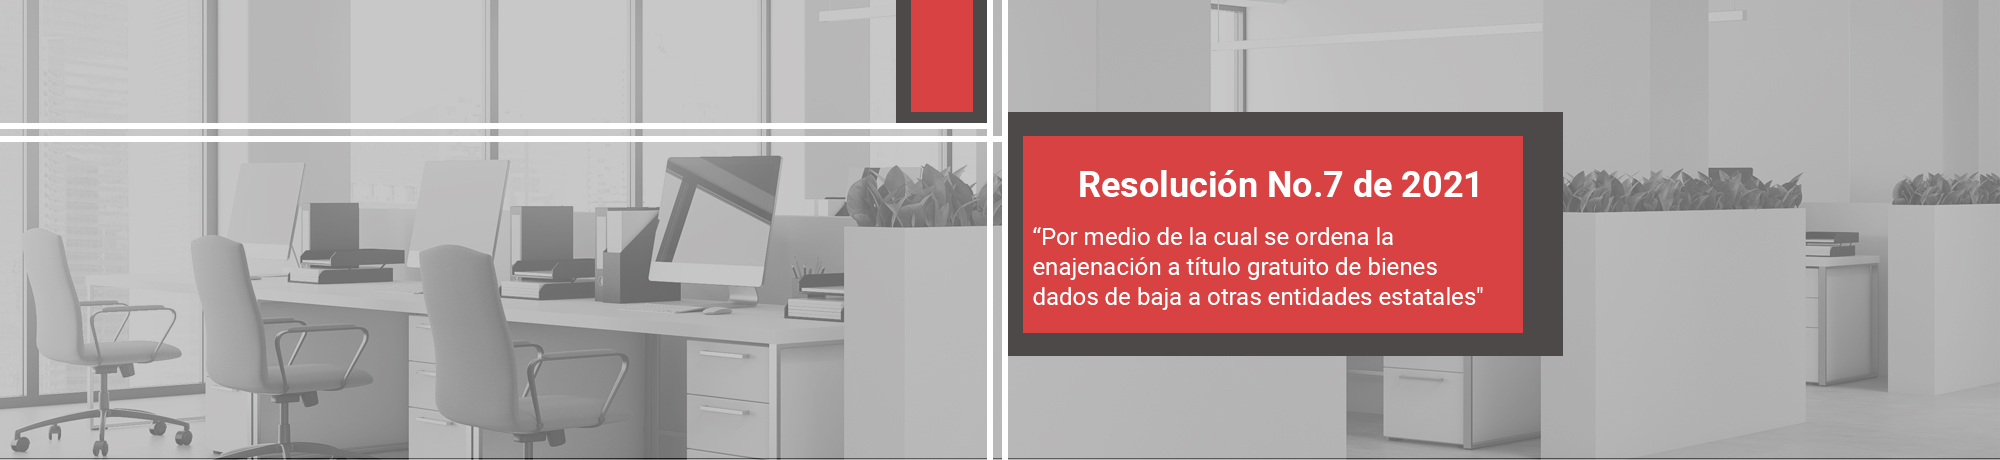 Resolución No. 7 de 2021